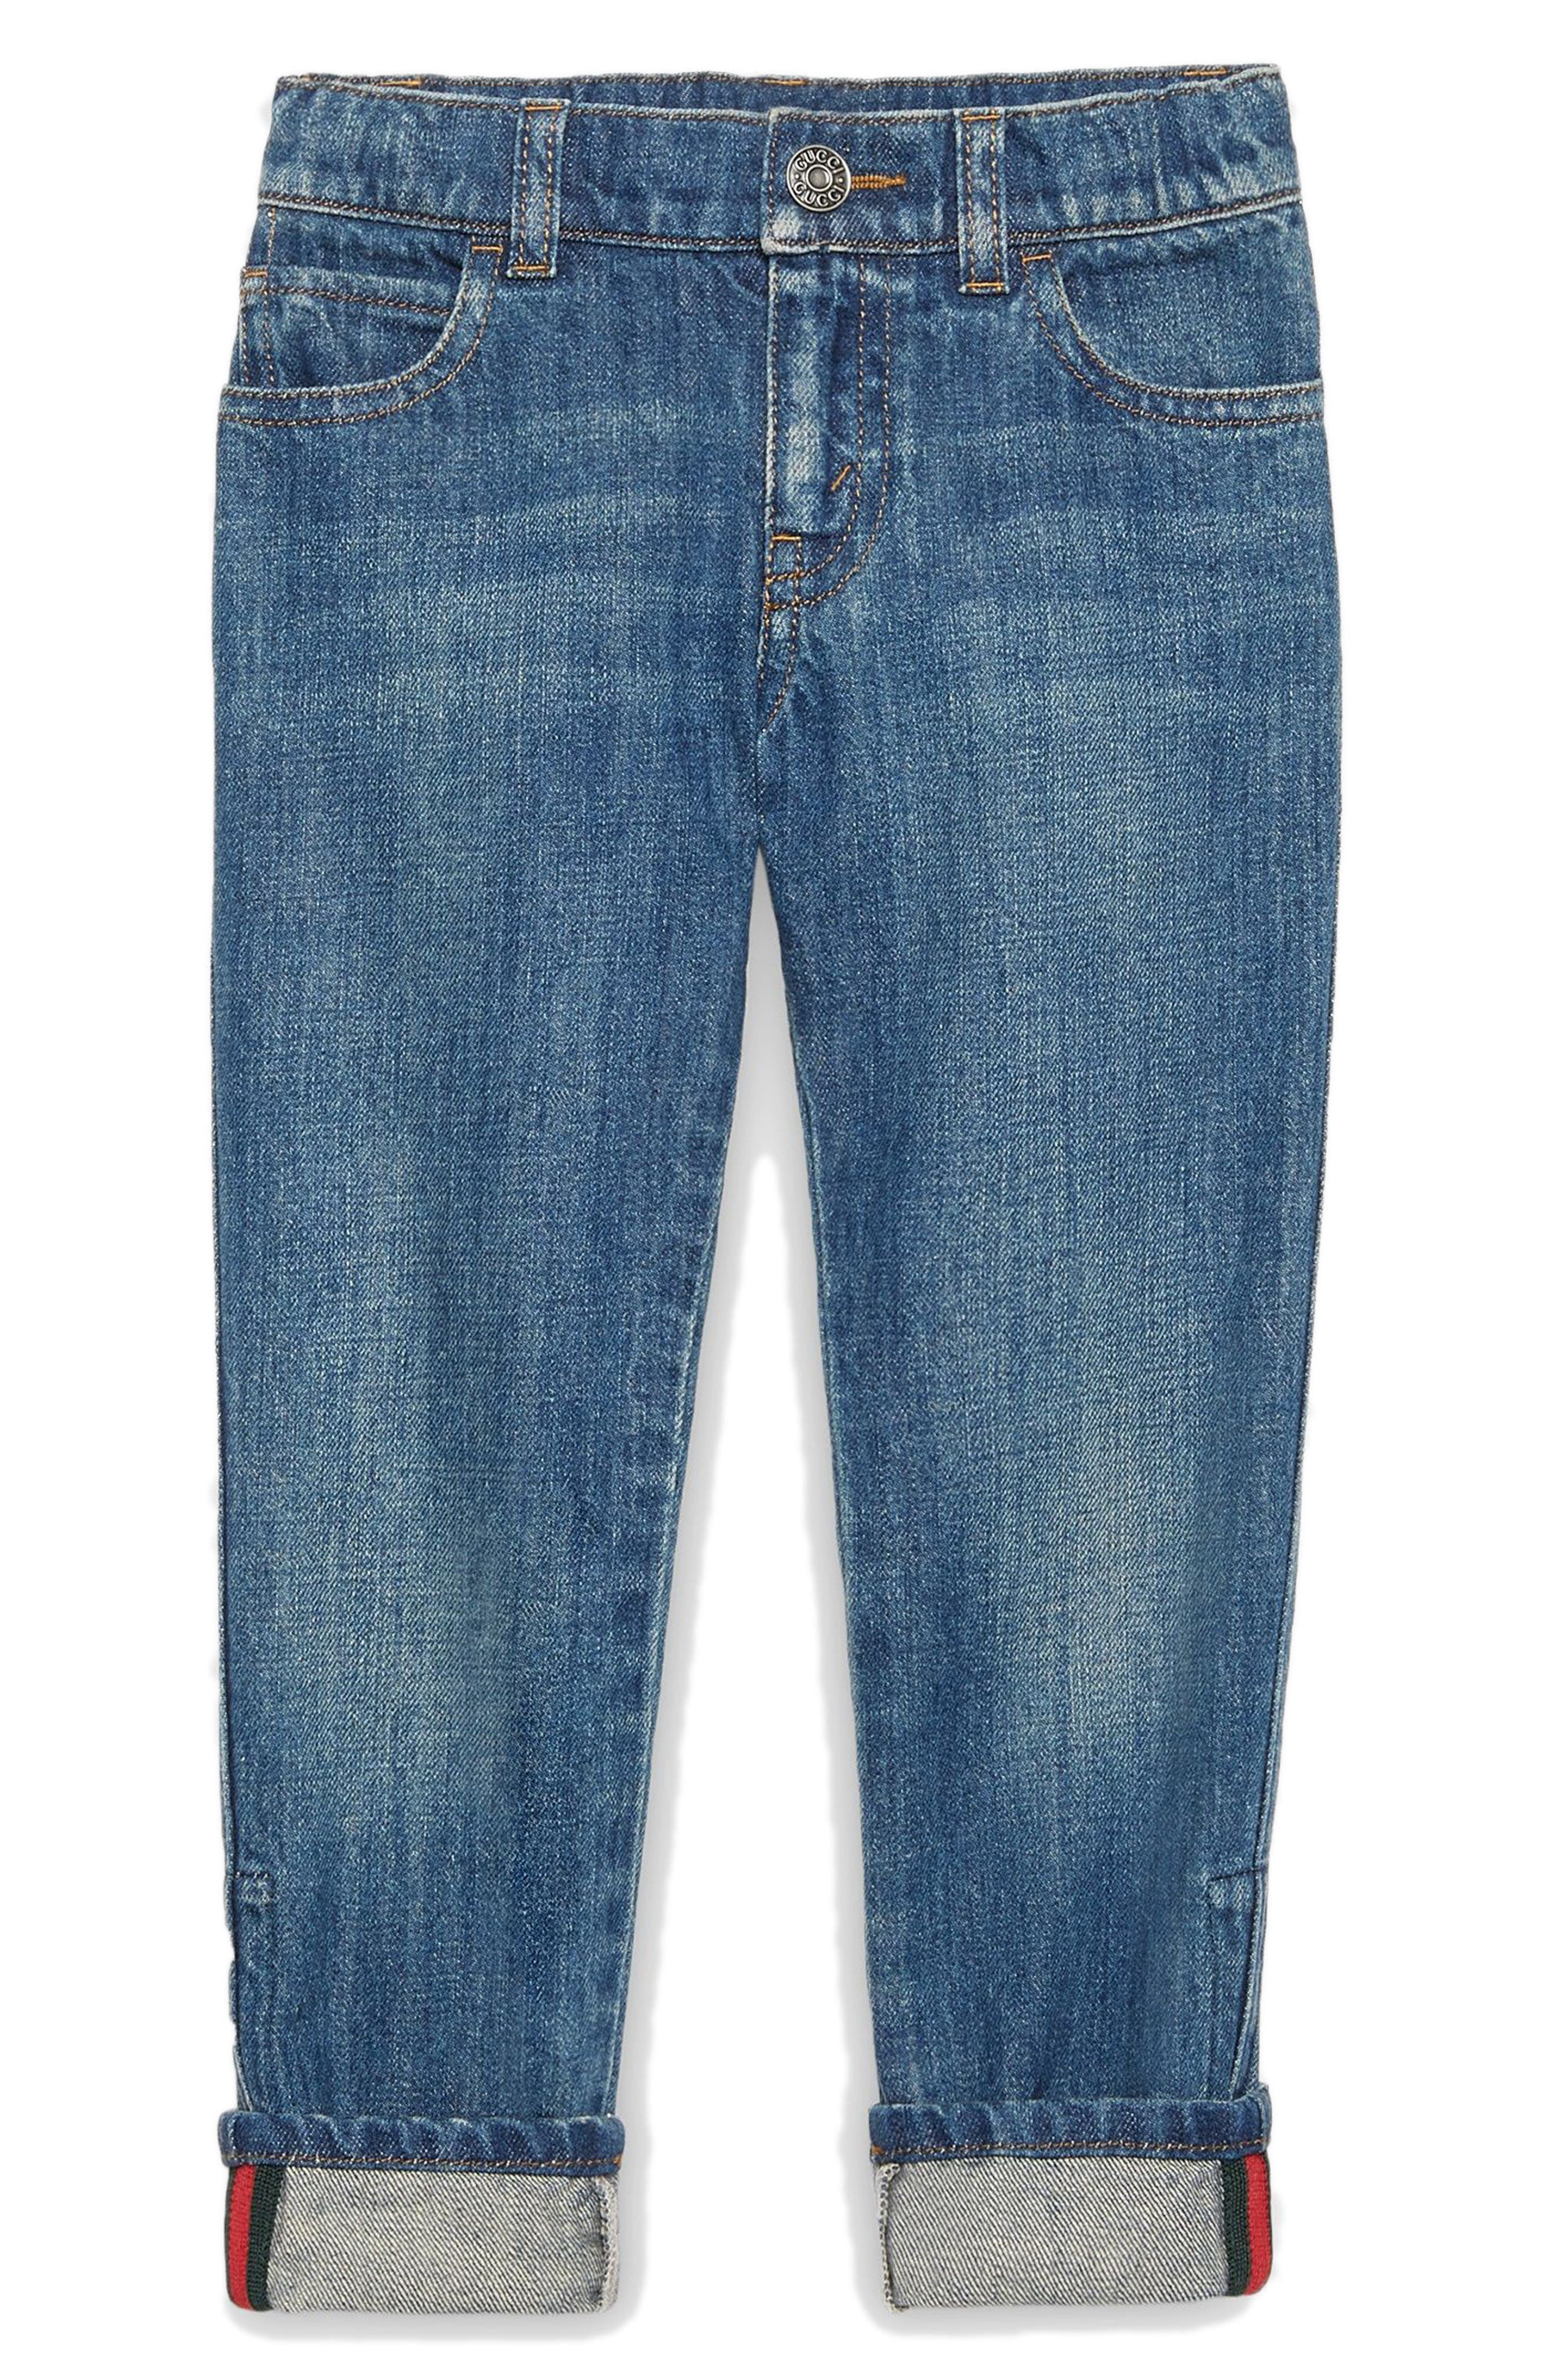 Alternate Image 1 Selected - Gucci Straight Leg Jeans (Little Boys & Big Boys)